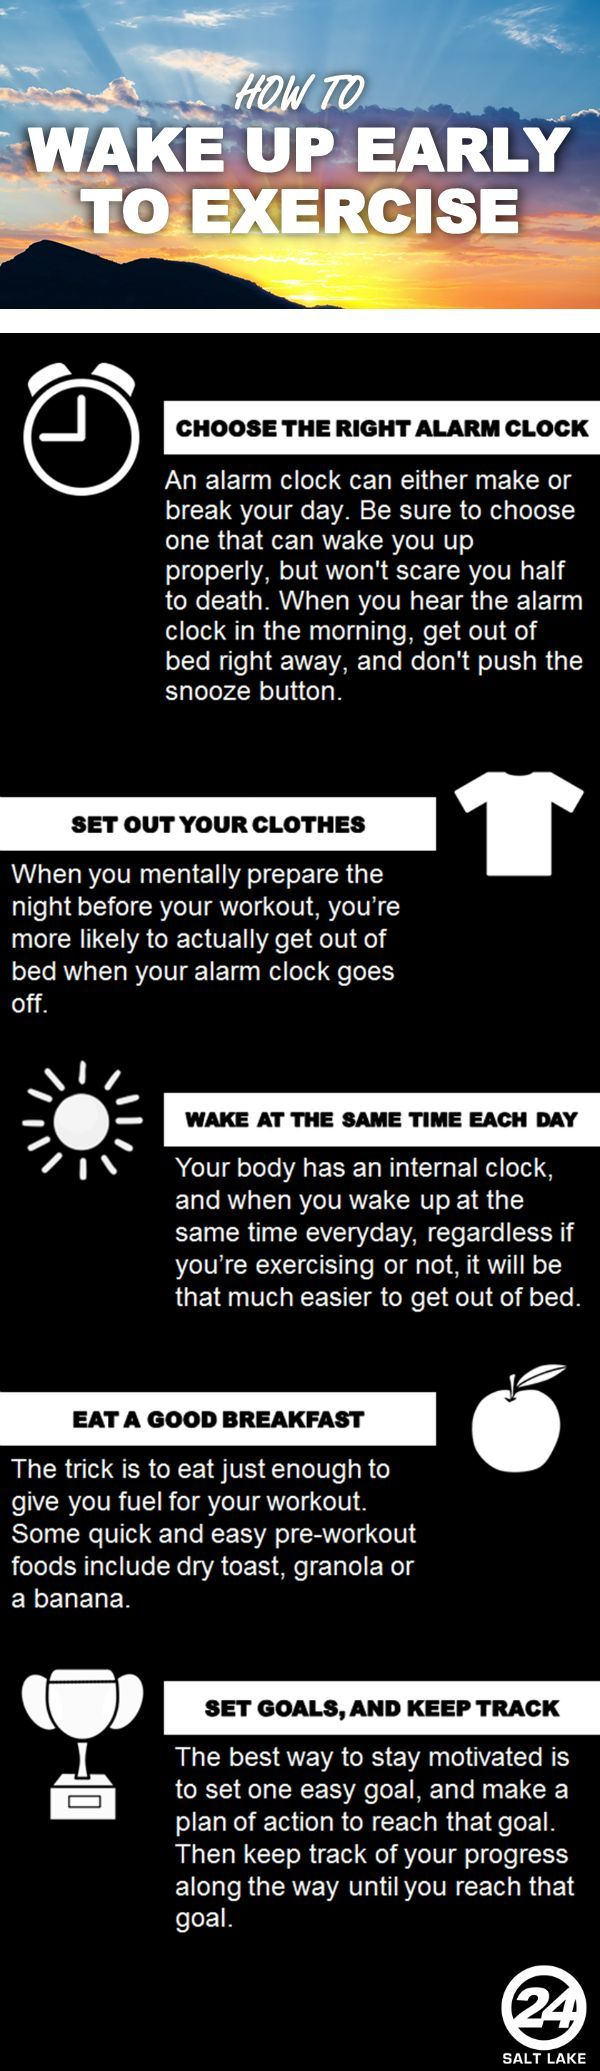 How to wake up early to exercise. Having a hard time getting out of bed in the morning? Try these tips, and youll be less likely to hit that snooze button on your alarm clock!